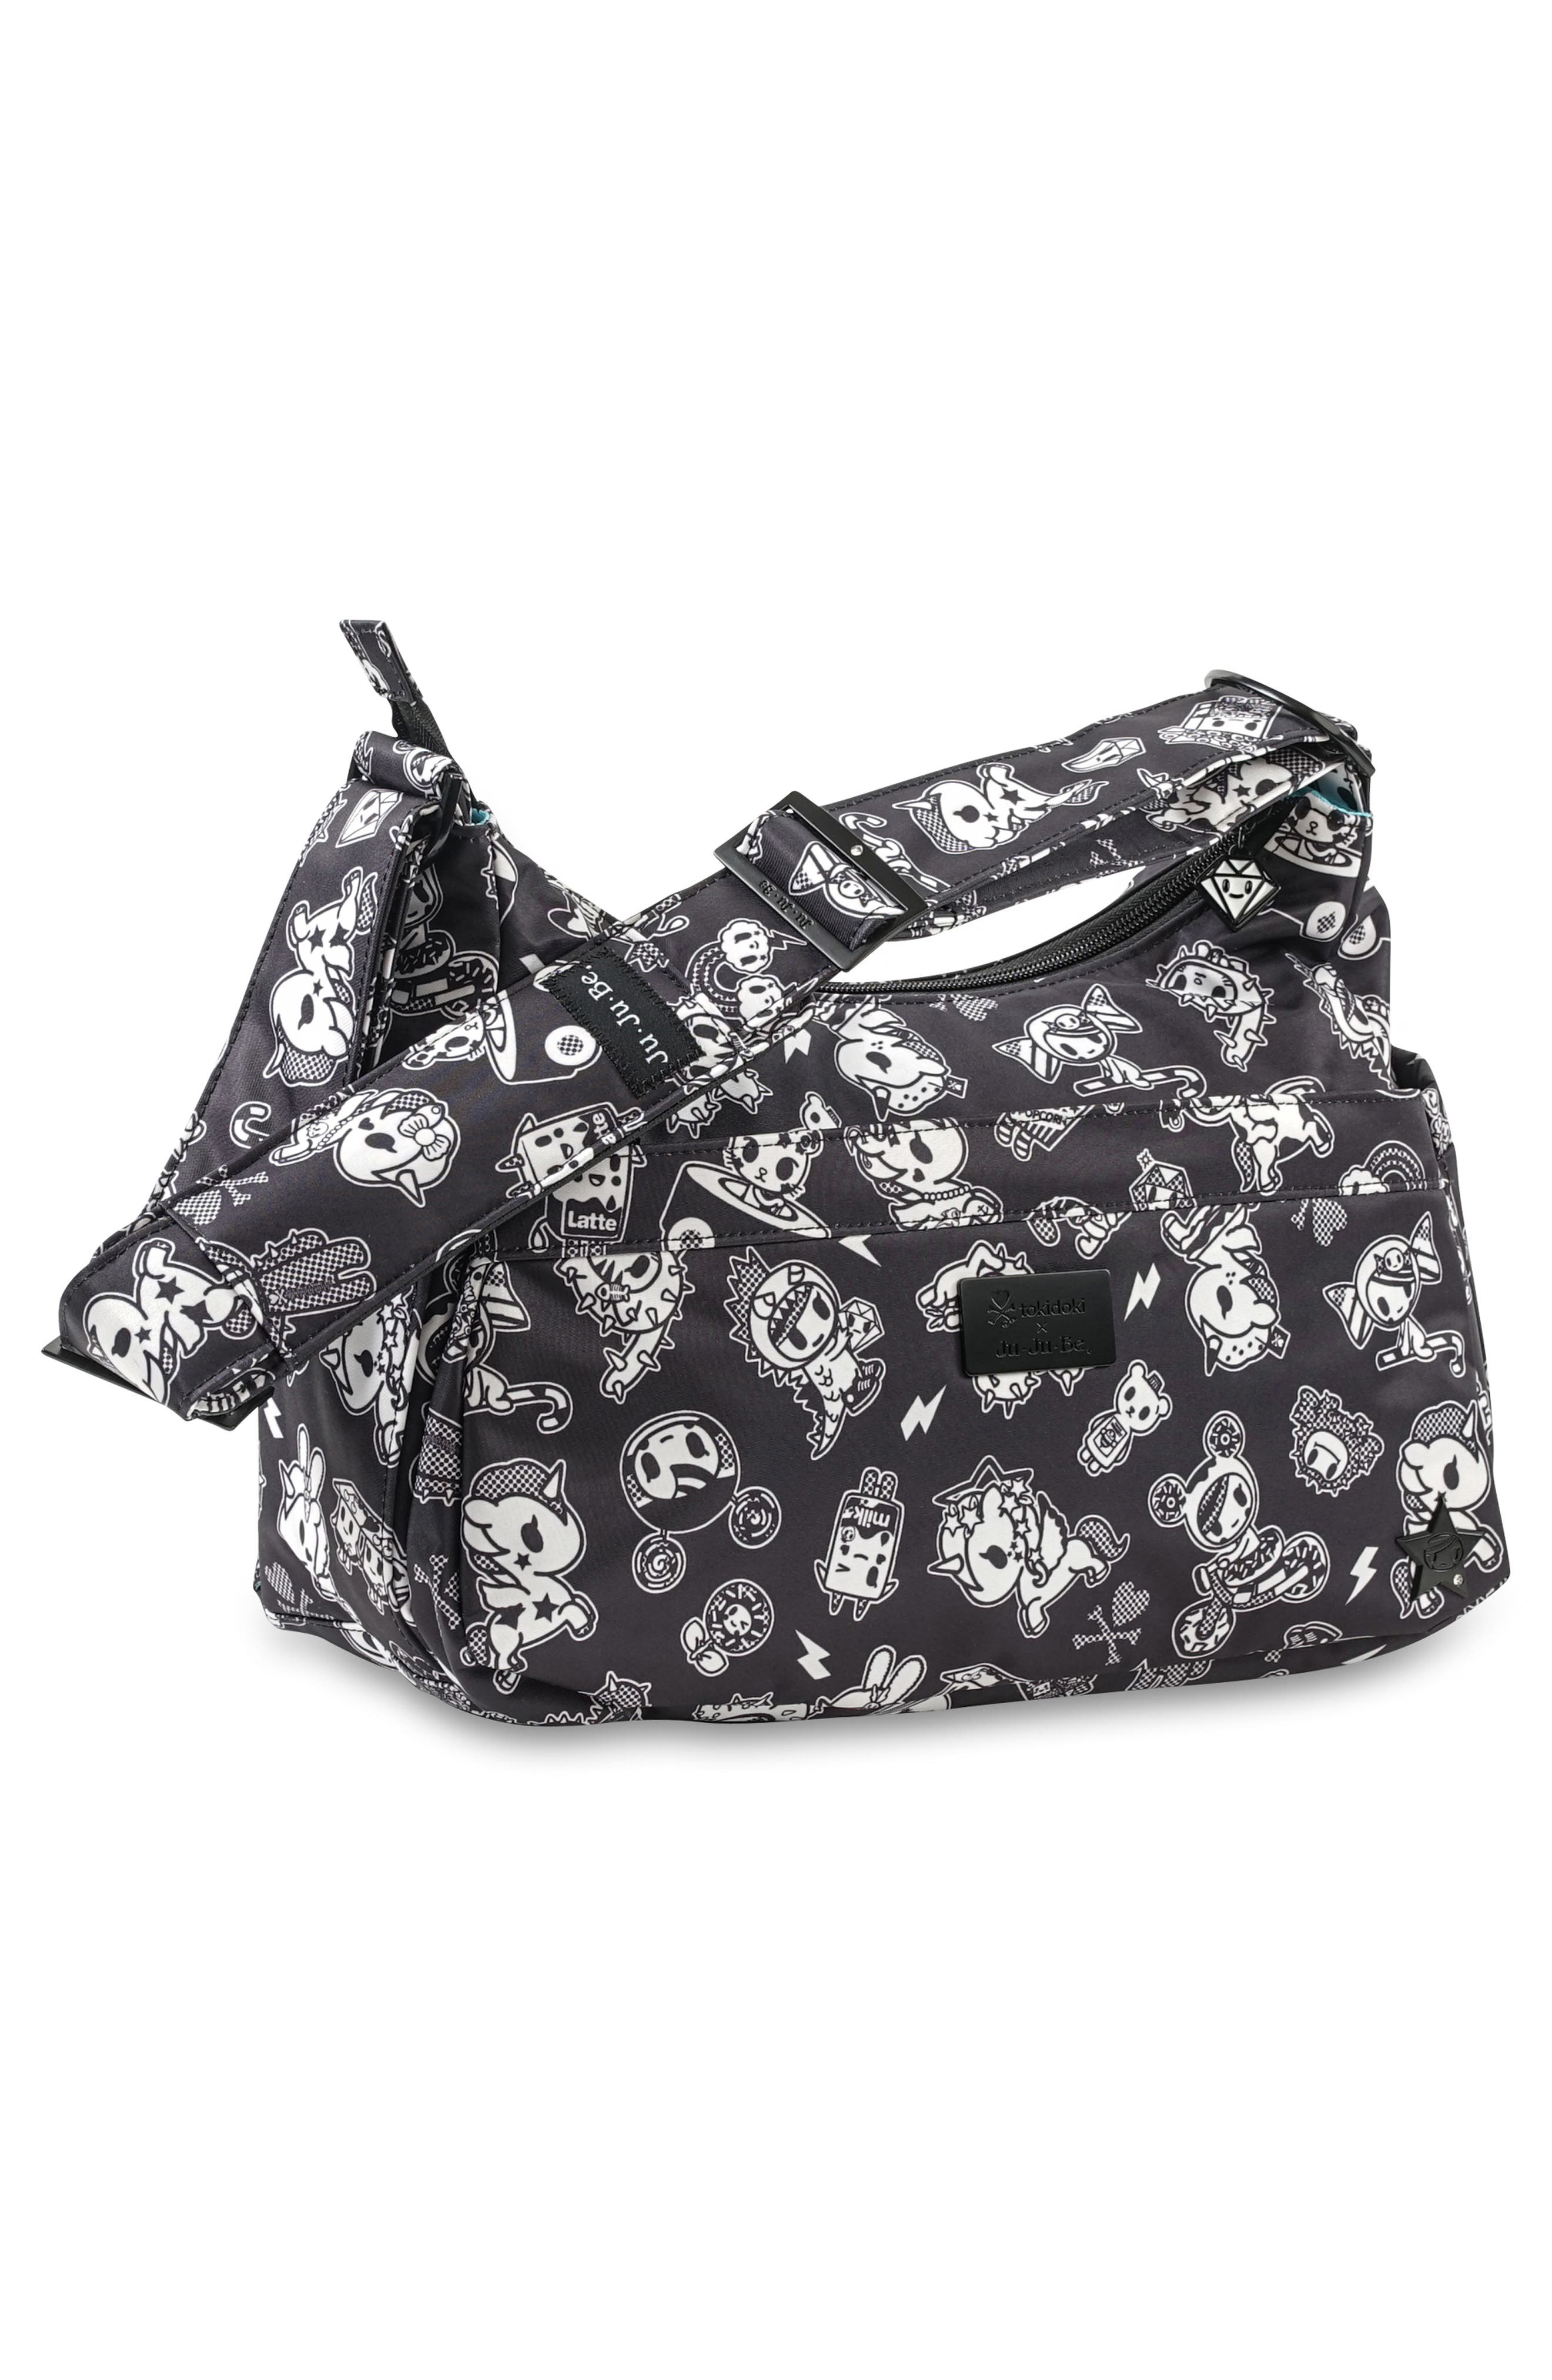 tokidoki x Ju-Ju-Be 'HoboBe' Diaper Bag,                             Alternate thumbnail 2, color,                             009